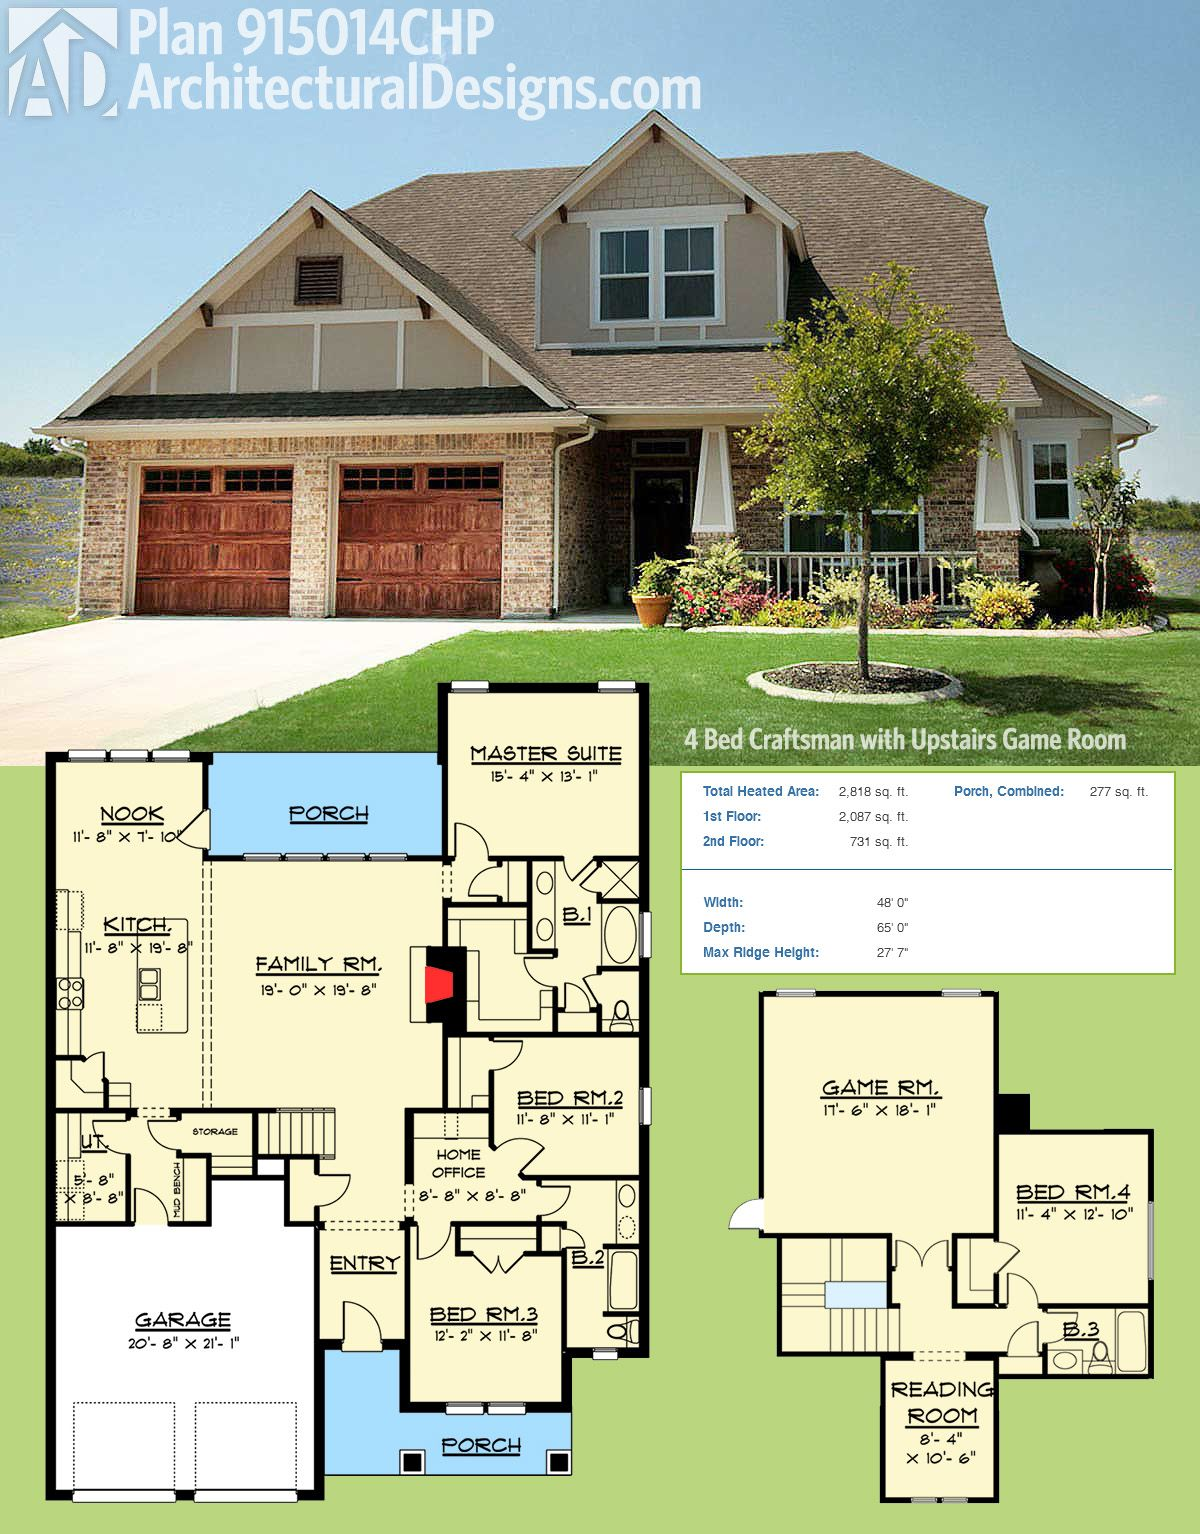 Architectural designs craftsman house plan 915014chp gives for 2800 square foot house plans